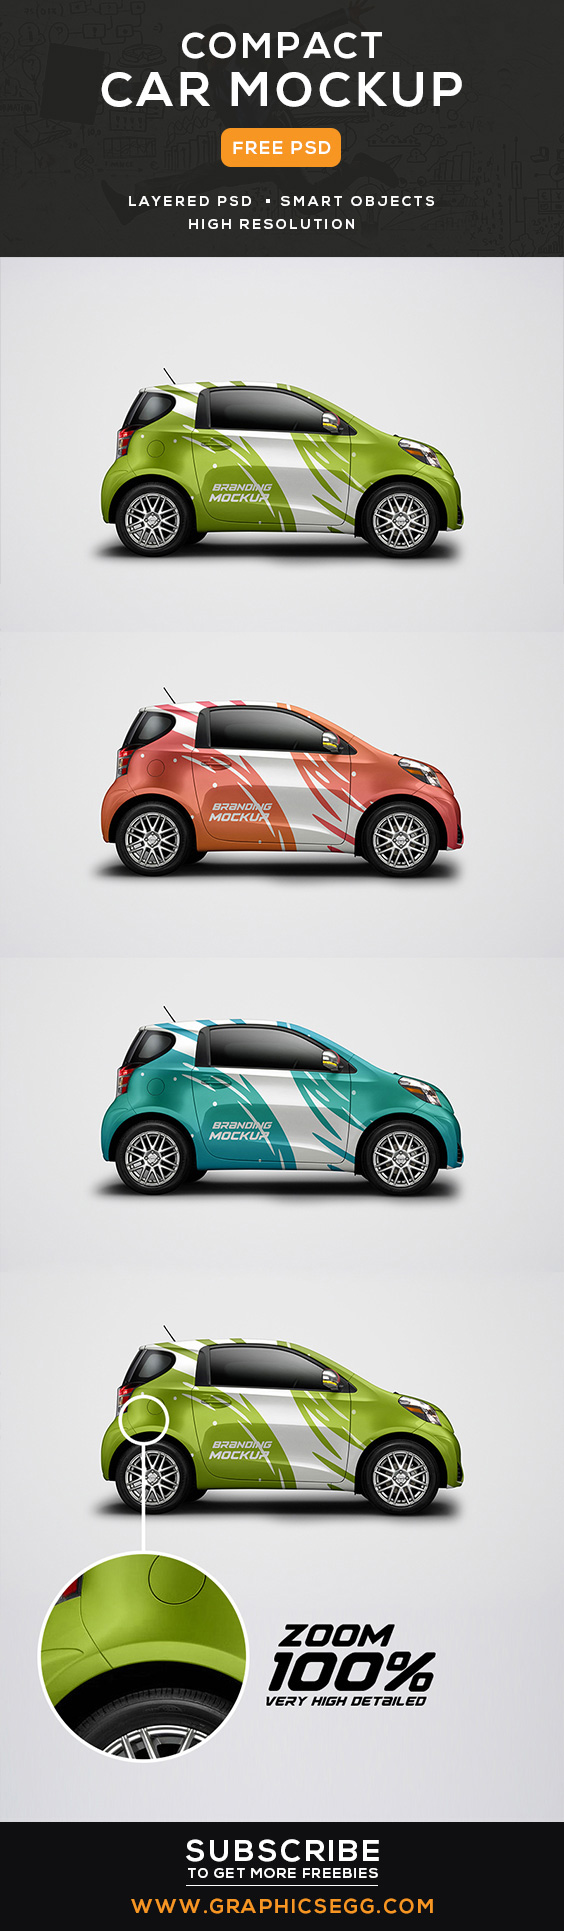 Today s freebie is car mockup free psd this mock up allows you to make awesome presentations of your works it can be mobile app website prints and more